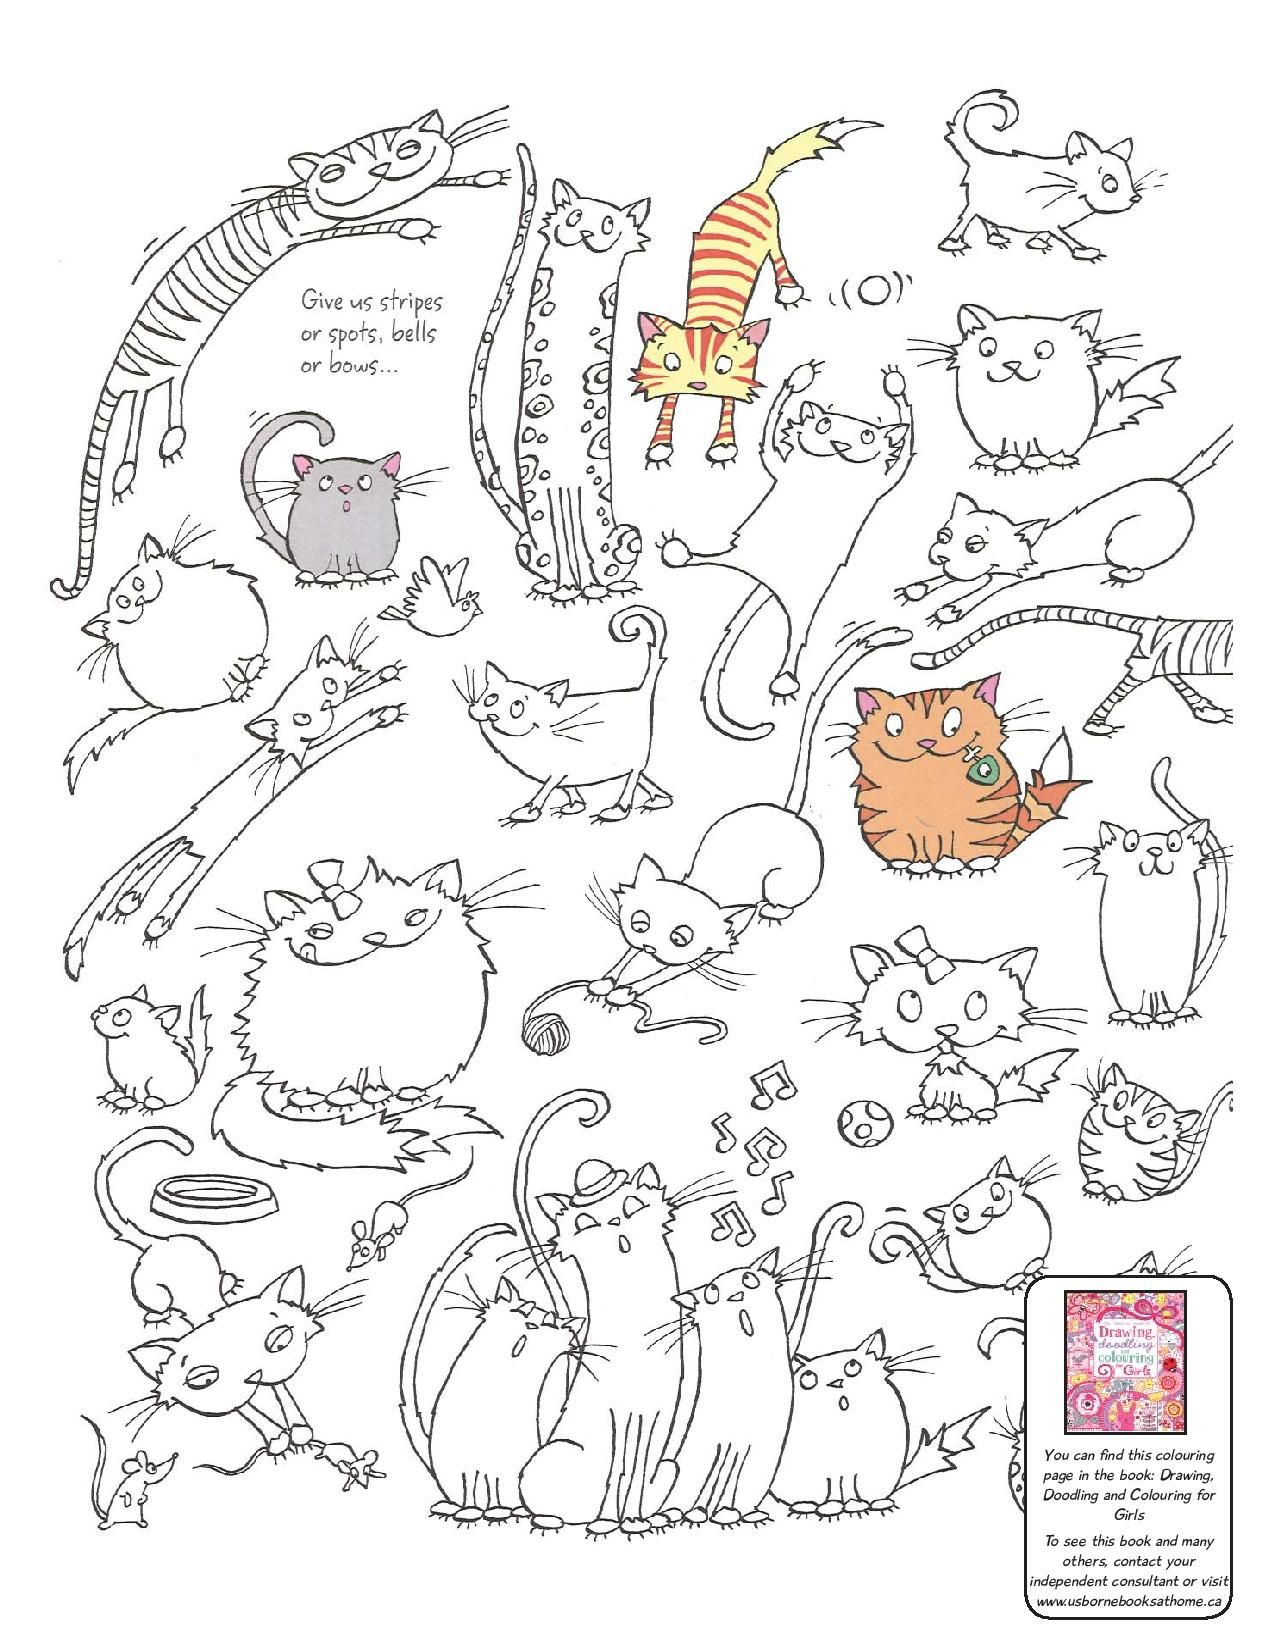 printable cat colouring page from usborne drawing doodling and